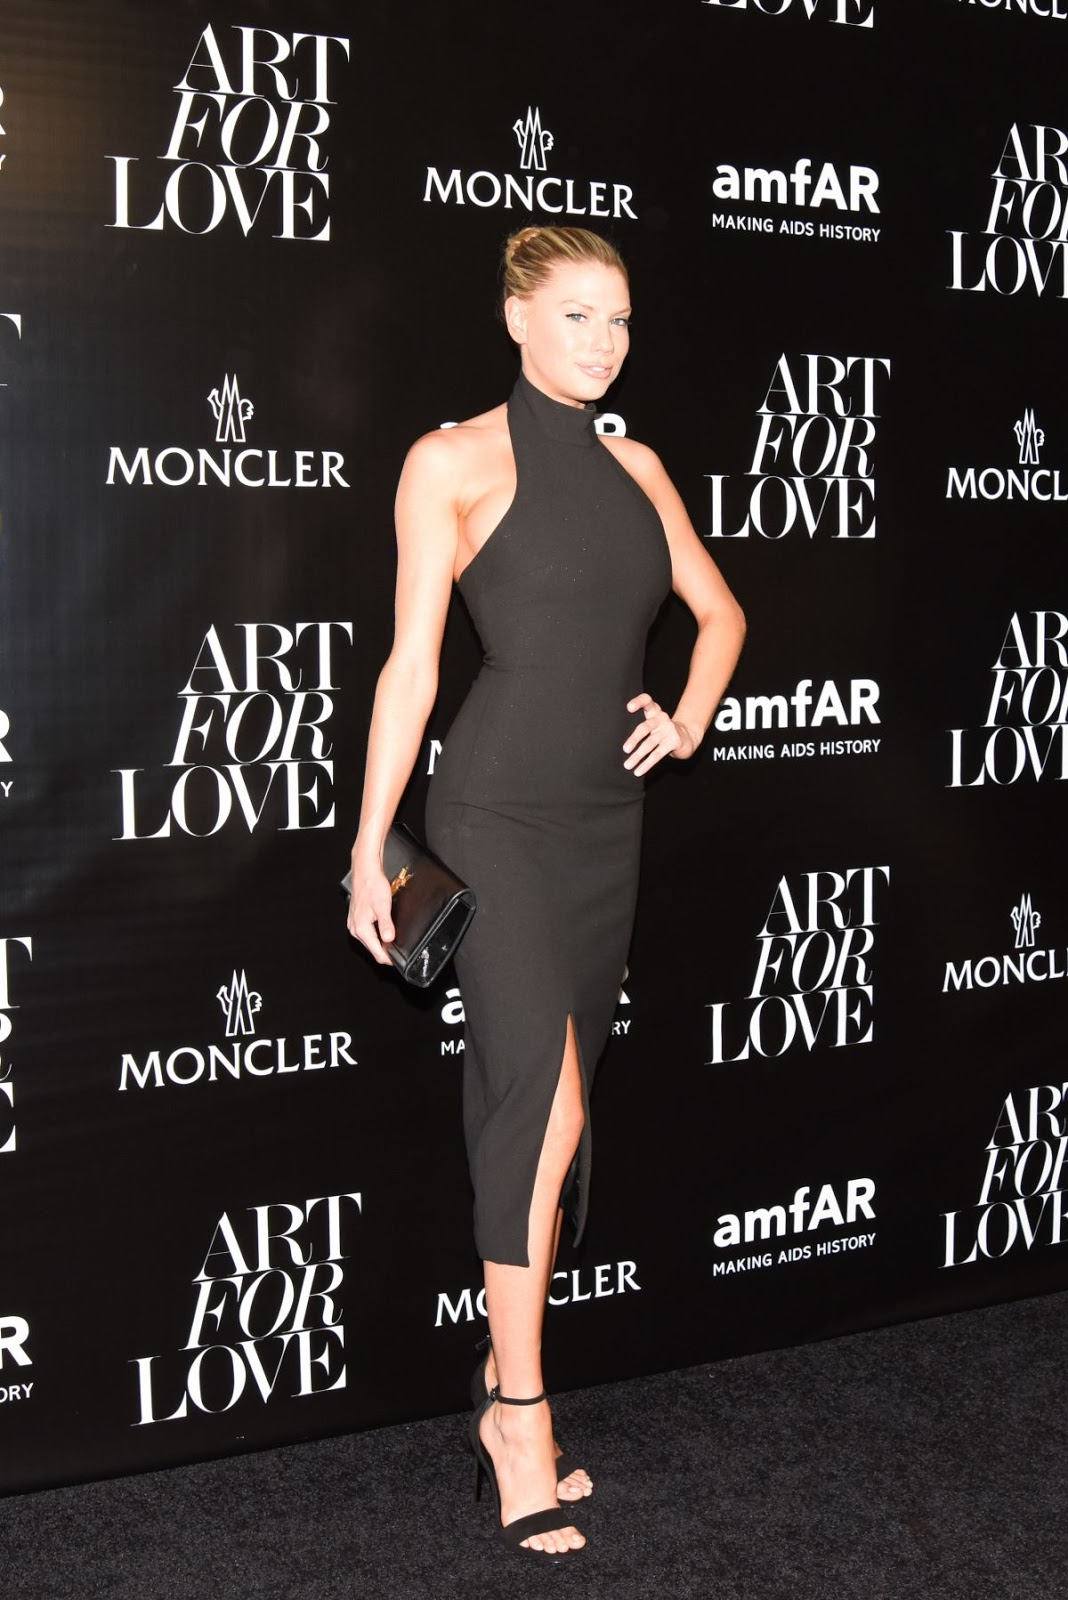 Full HQ Photos of Charlotte Mckinney in Black dress At Oncler Amfar Celebrate Art Of Love In New York